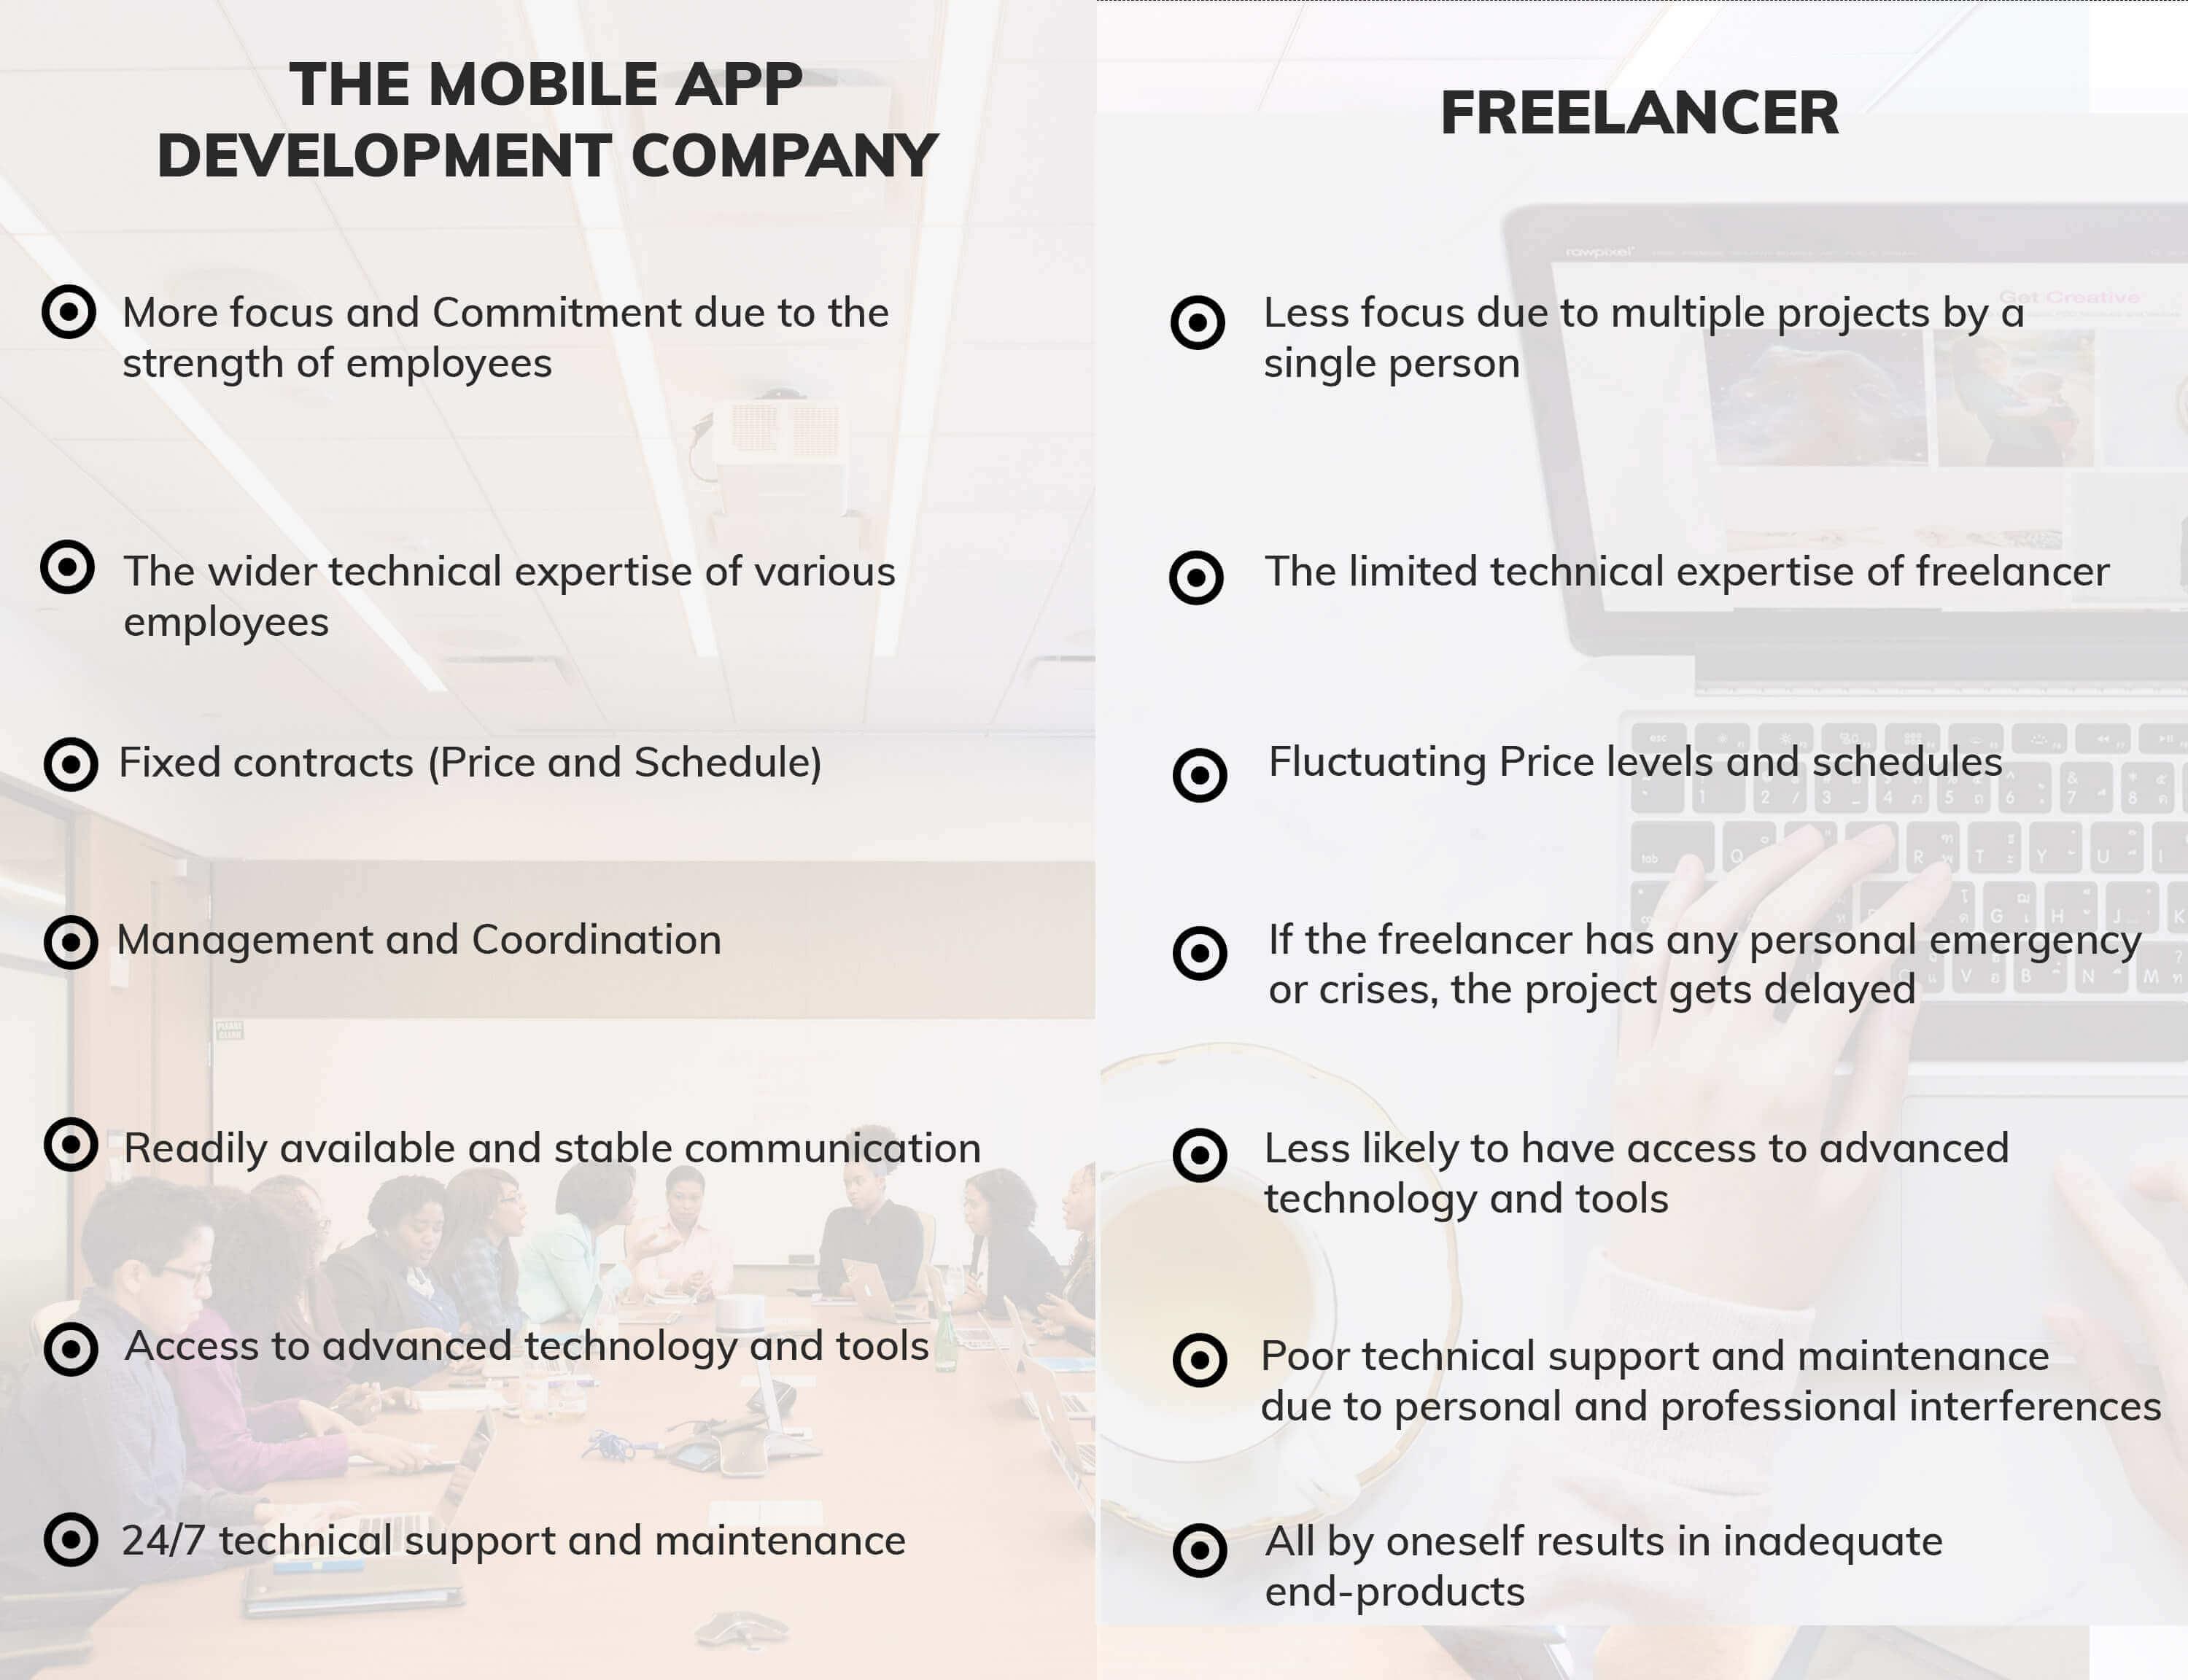 app development company vs freelancer